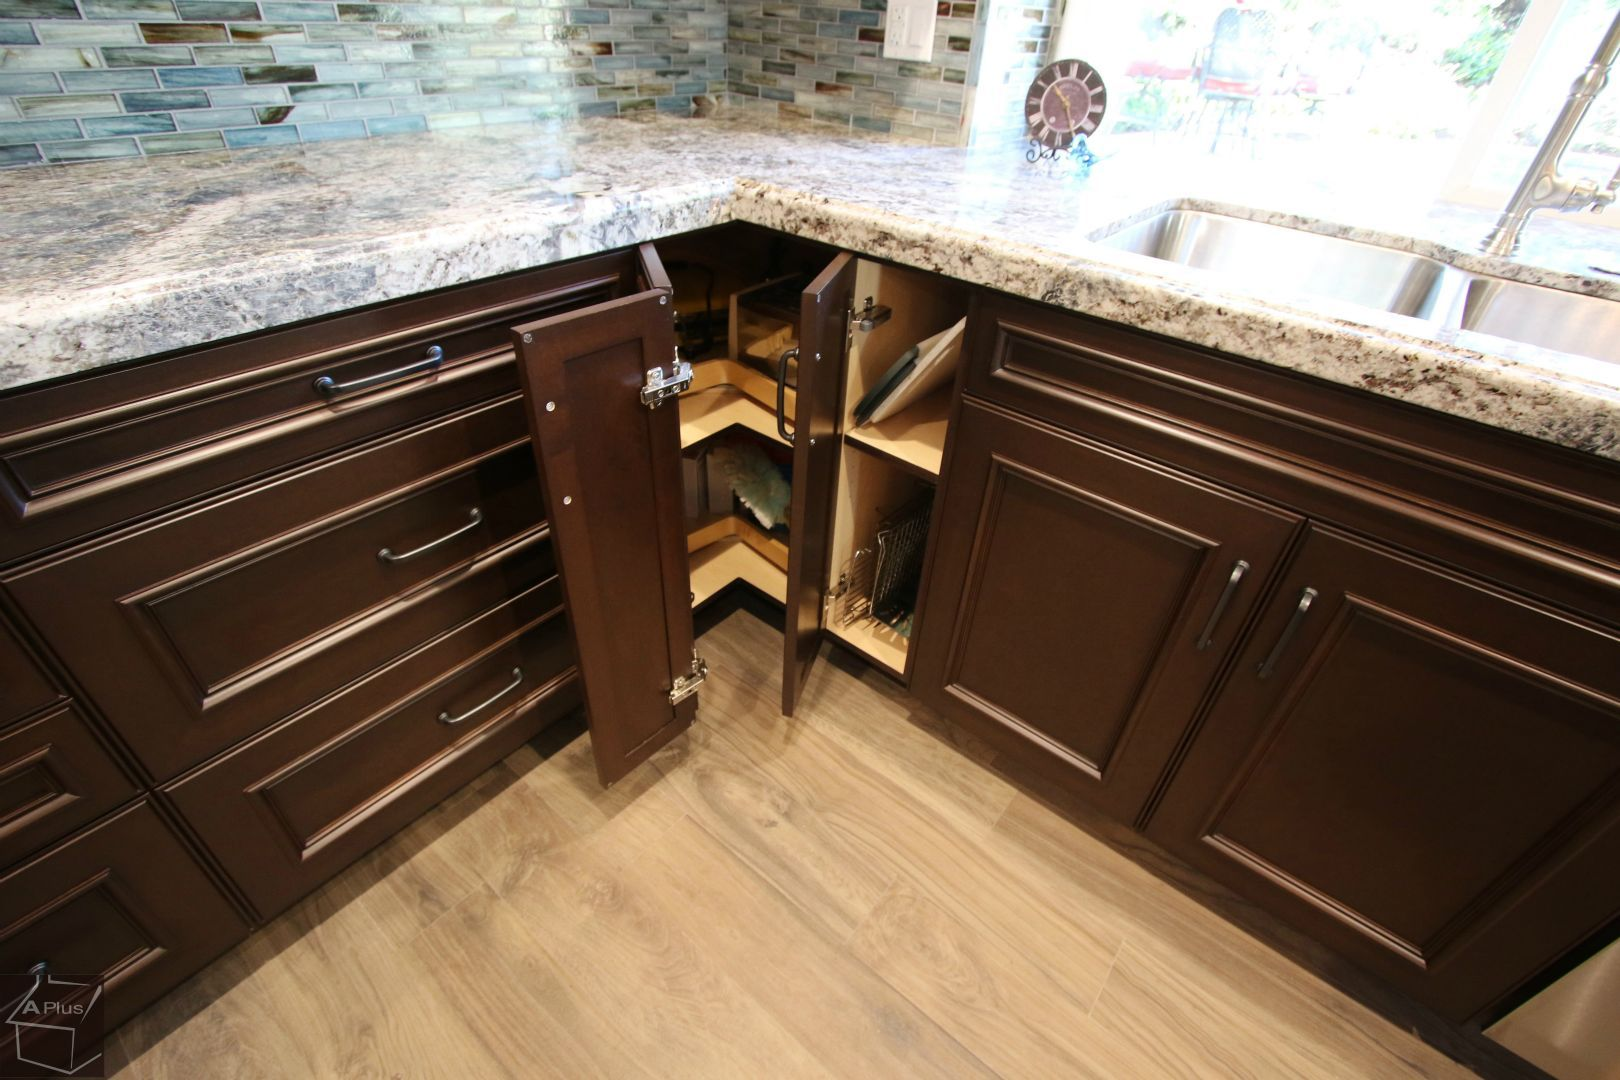 Design Build Traditional #Kitchen #Remodel with APlus #Cabinets in city of Laguna Hills Orange County